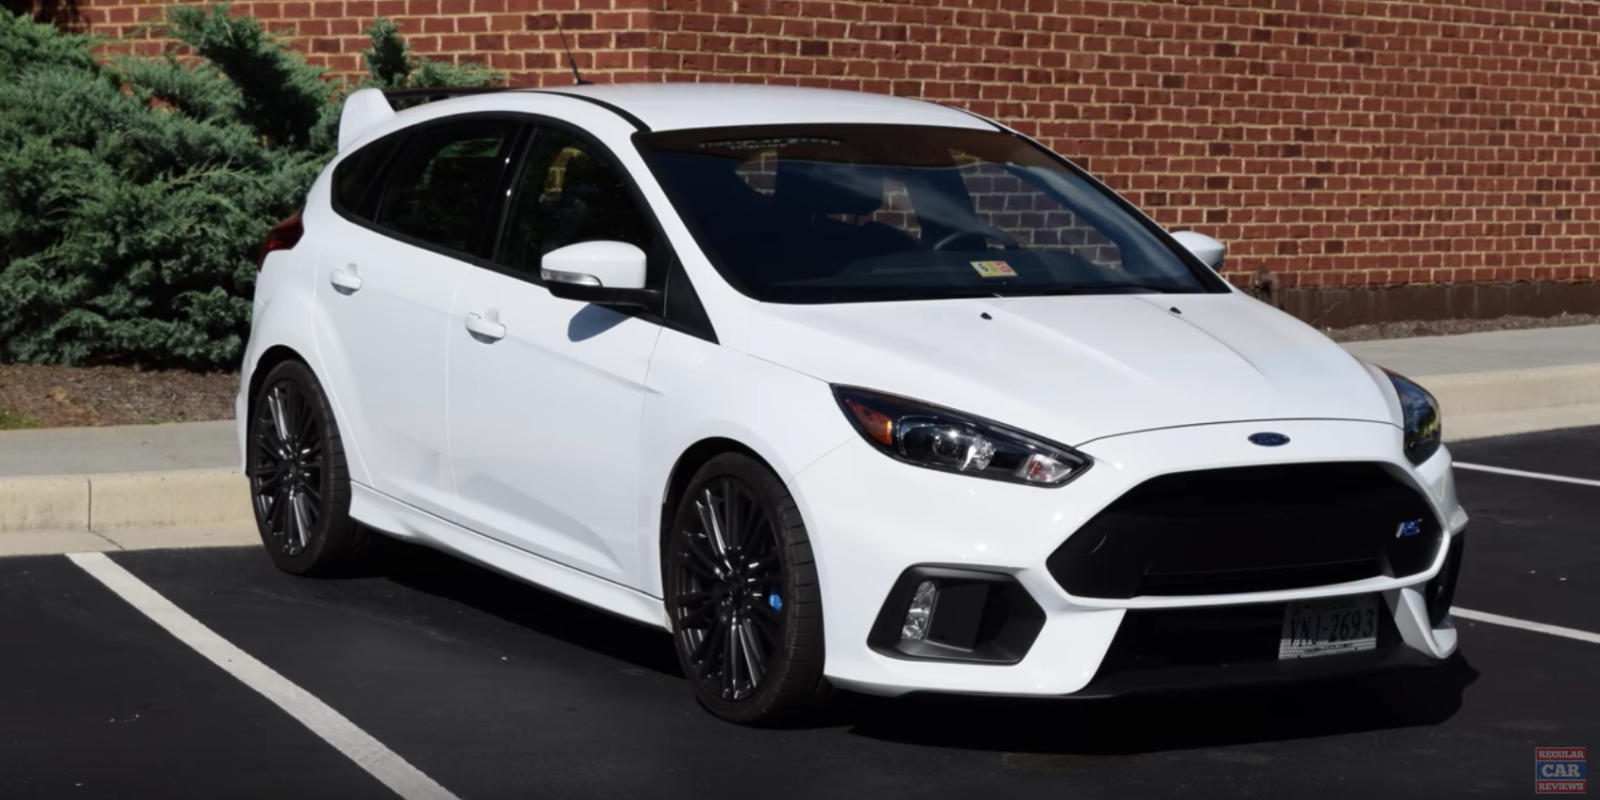 & The Ford Focus RS Is the Ultimate Family Sports Car markmcfarlin.com